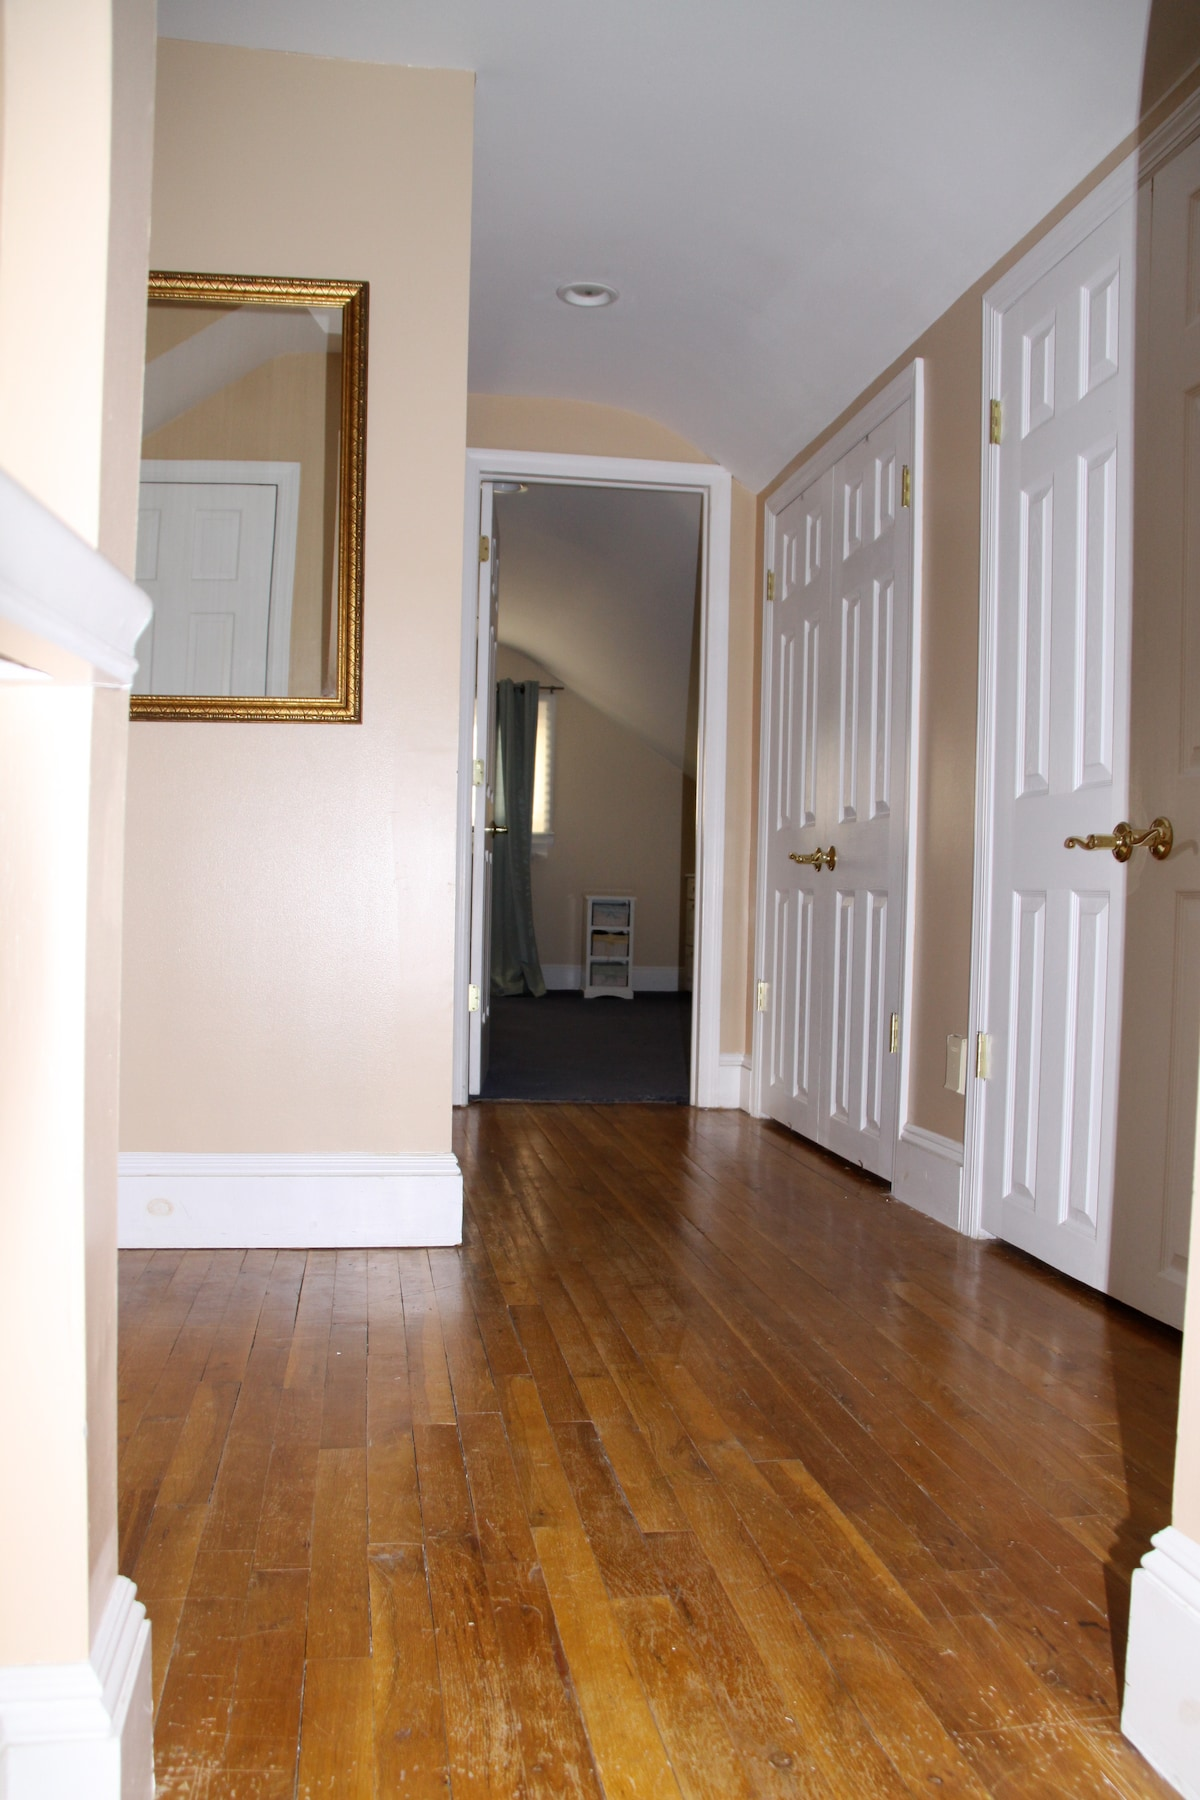 This is the upstairs hallway, with large closets for storage of clothes, shoes, books, suitcases, etc.